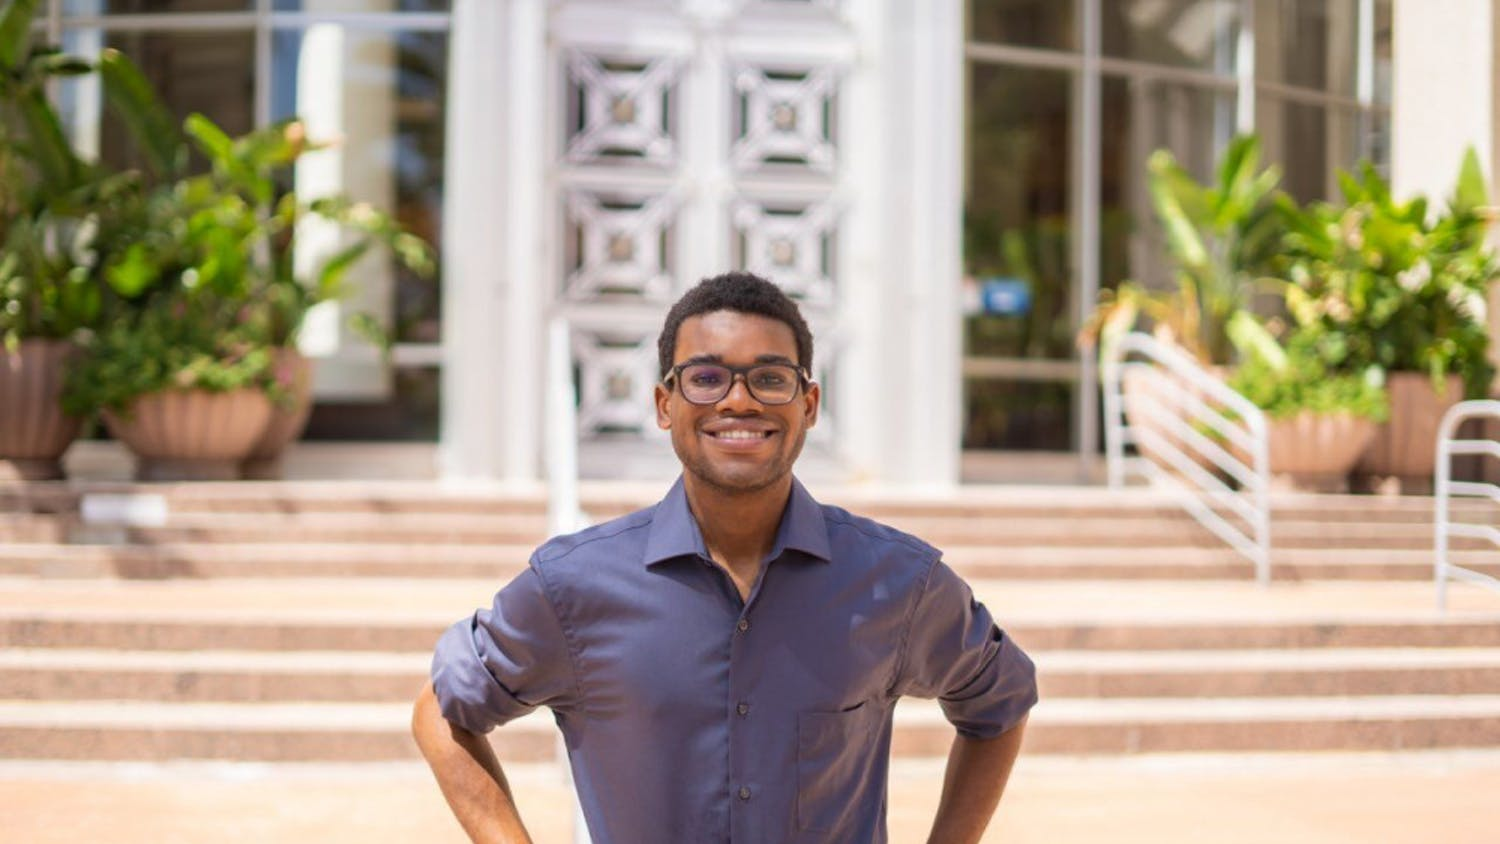 Nate Douglas, an Orlando native and UF economics junior, became Orange County's Soil and Water Conservation District 1 supervisor-elect on Nov. 3.